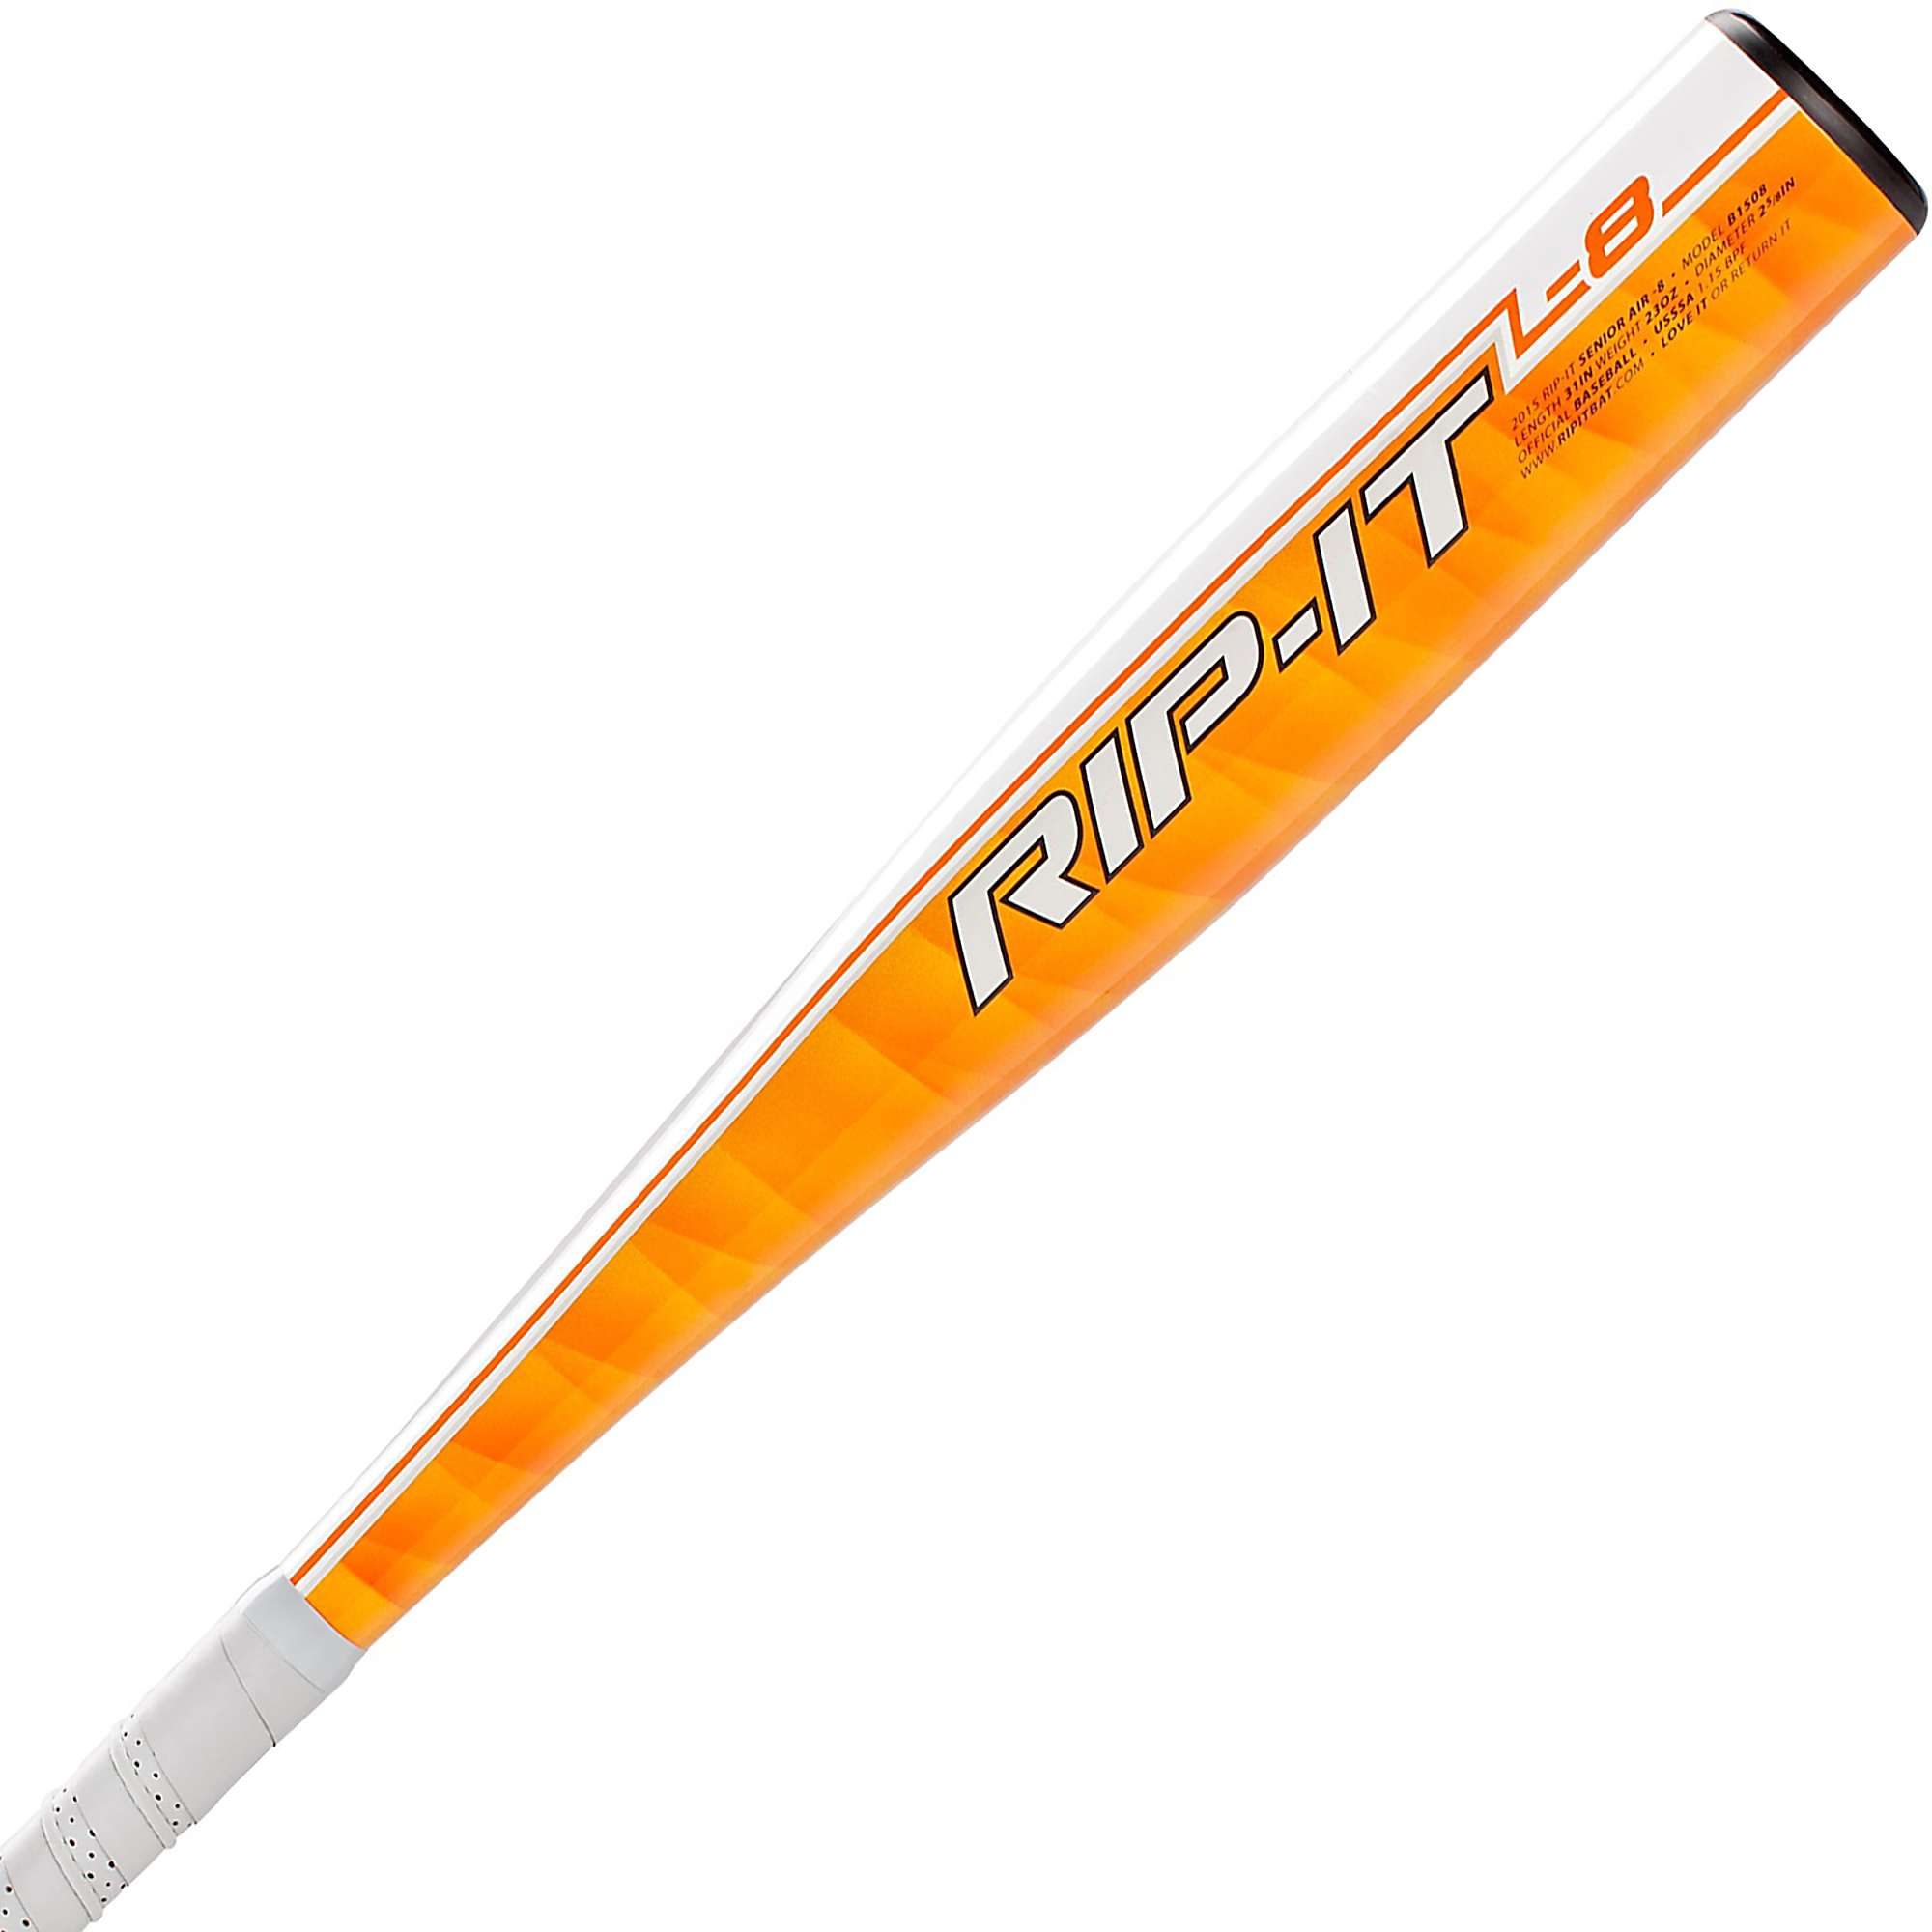 "Rip-It 2015 Air -8 Big Barrel Baseball Bat (2 5/8"") 